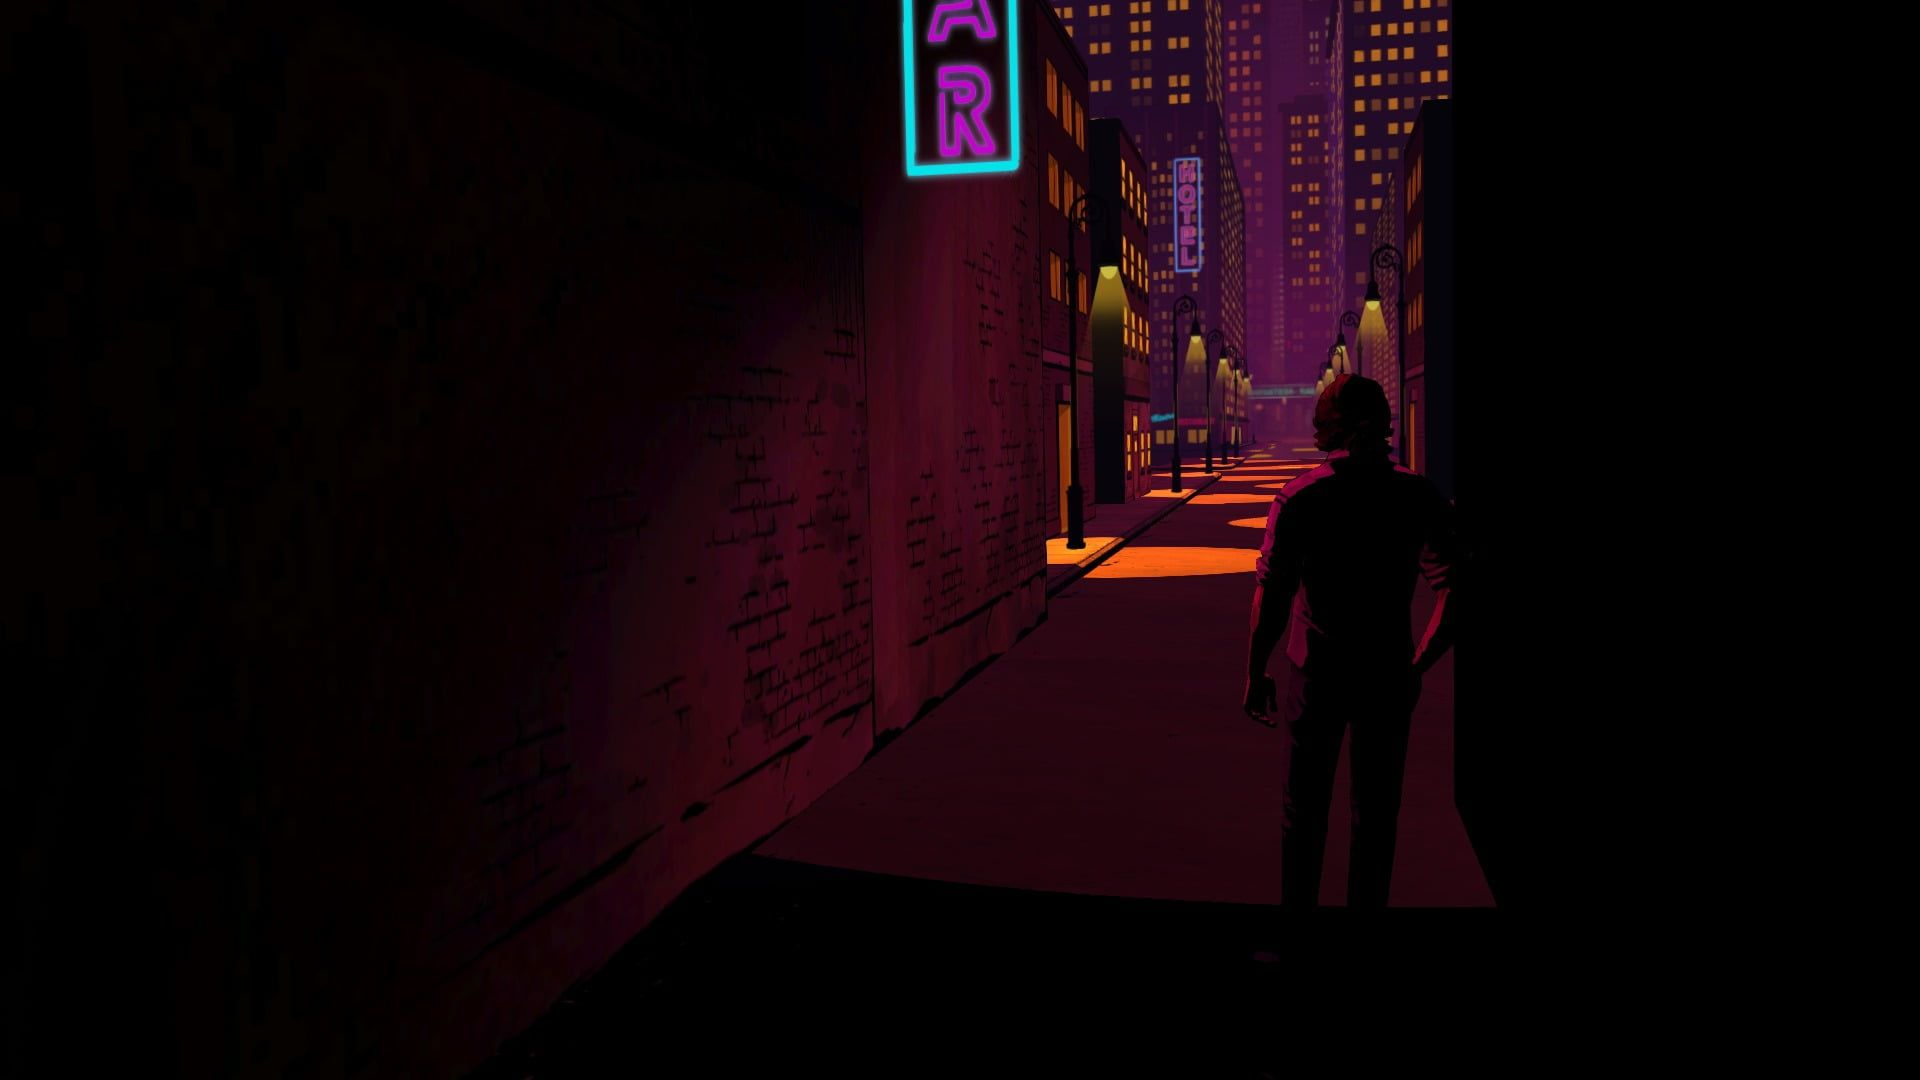 Black And Red Computer Tower The Wolf Among Us Video Games 1080p Wallpaper Hdwallpaper Desktop In 2020 The Wolf Among Us Hd Wallpaper Neon Noir